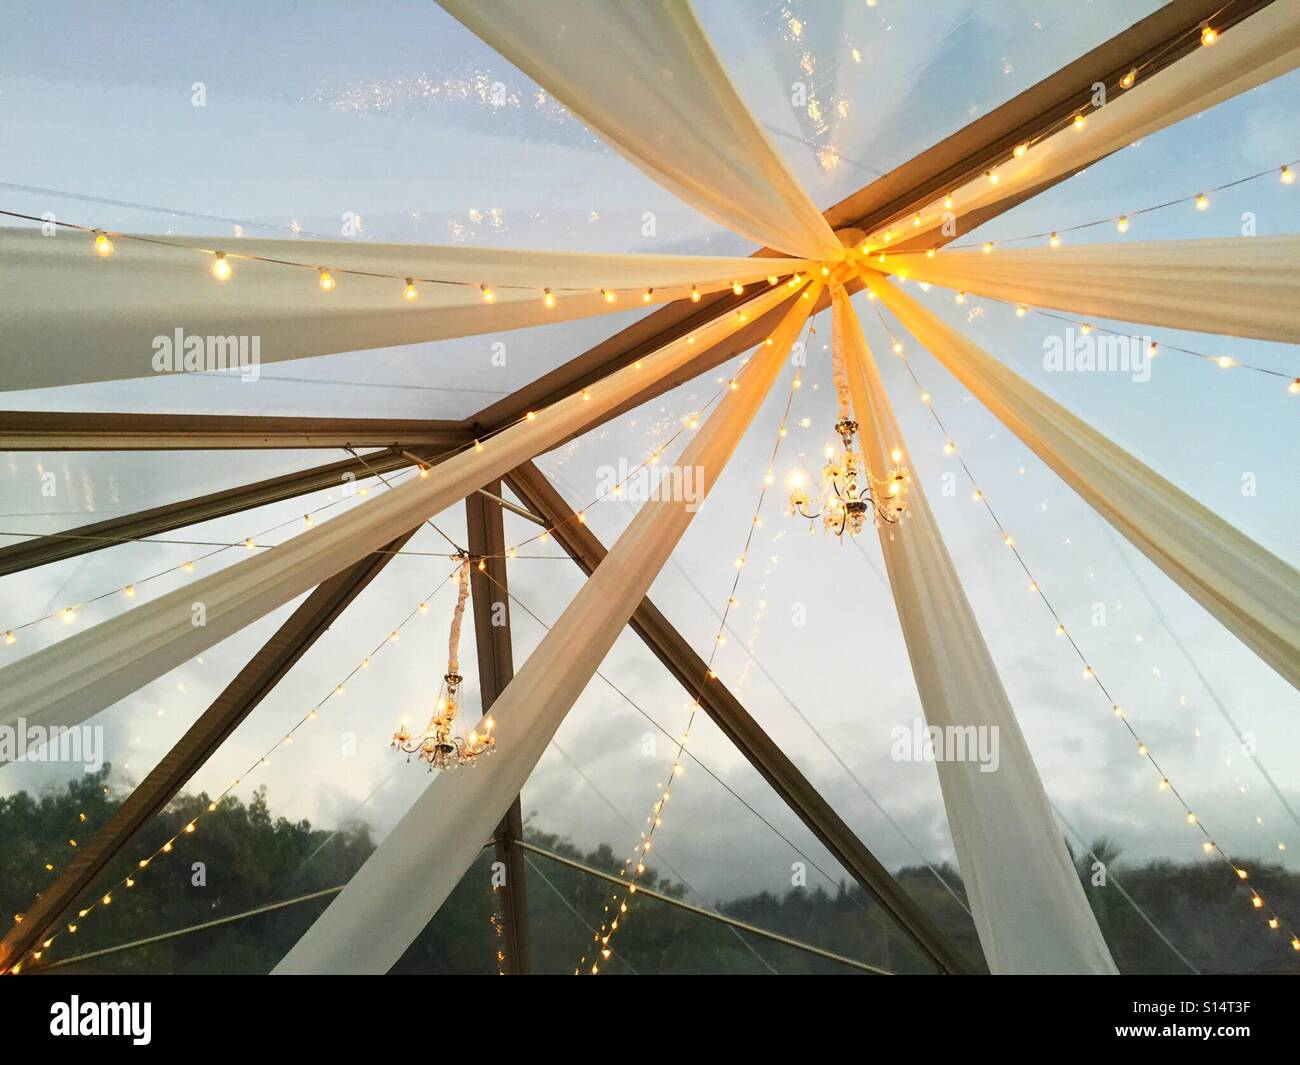 Streamers and chandelier at a wedding - Stock Image